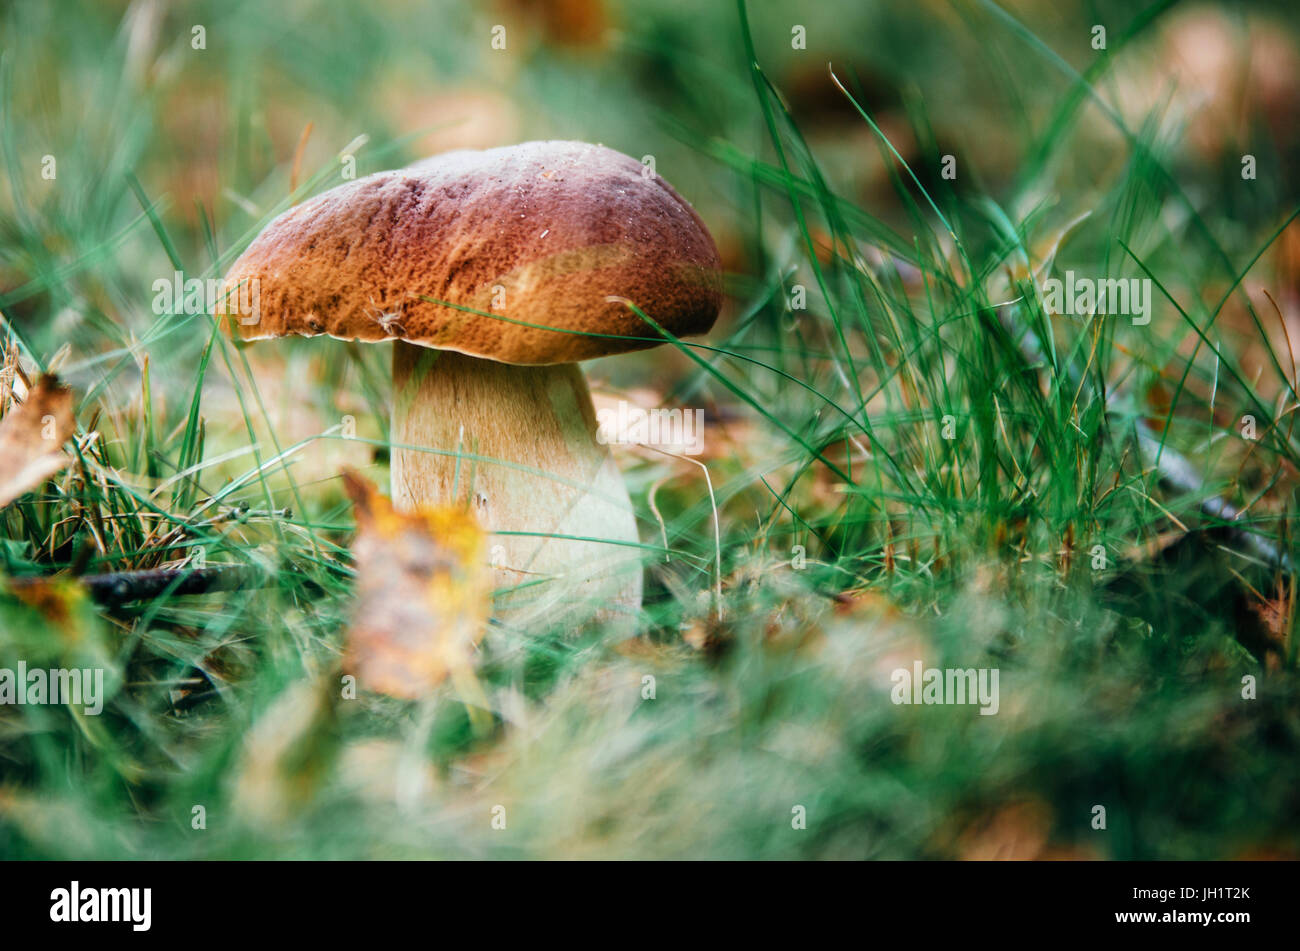 Boletus mushroom porcini growing in a moss and grass close up in forest of Belarus - Stock Image